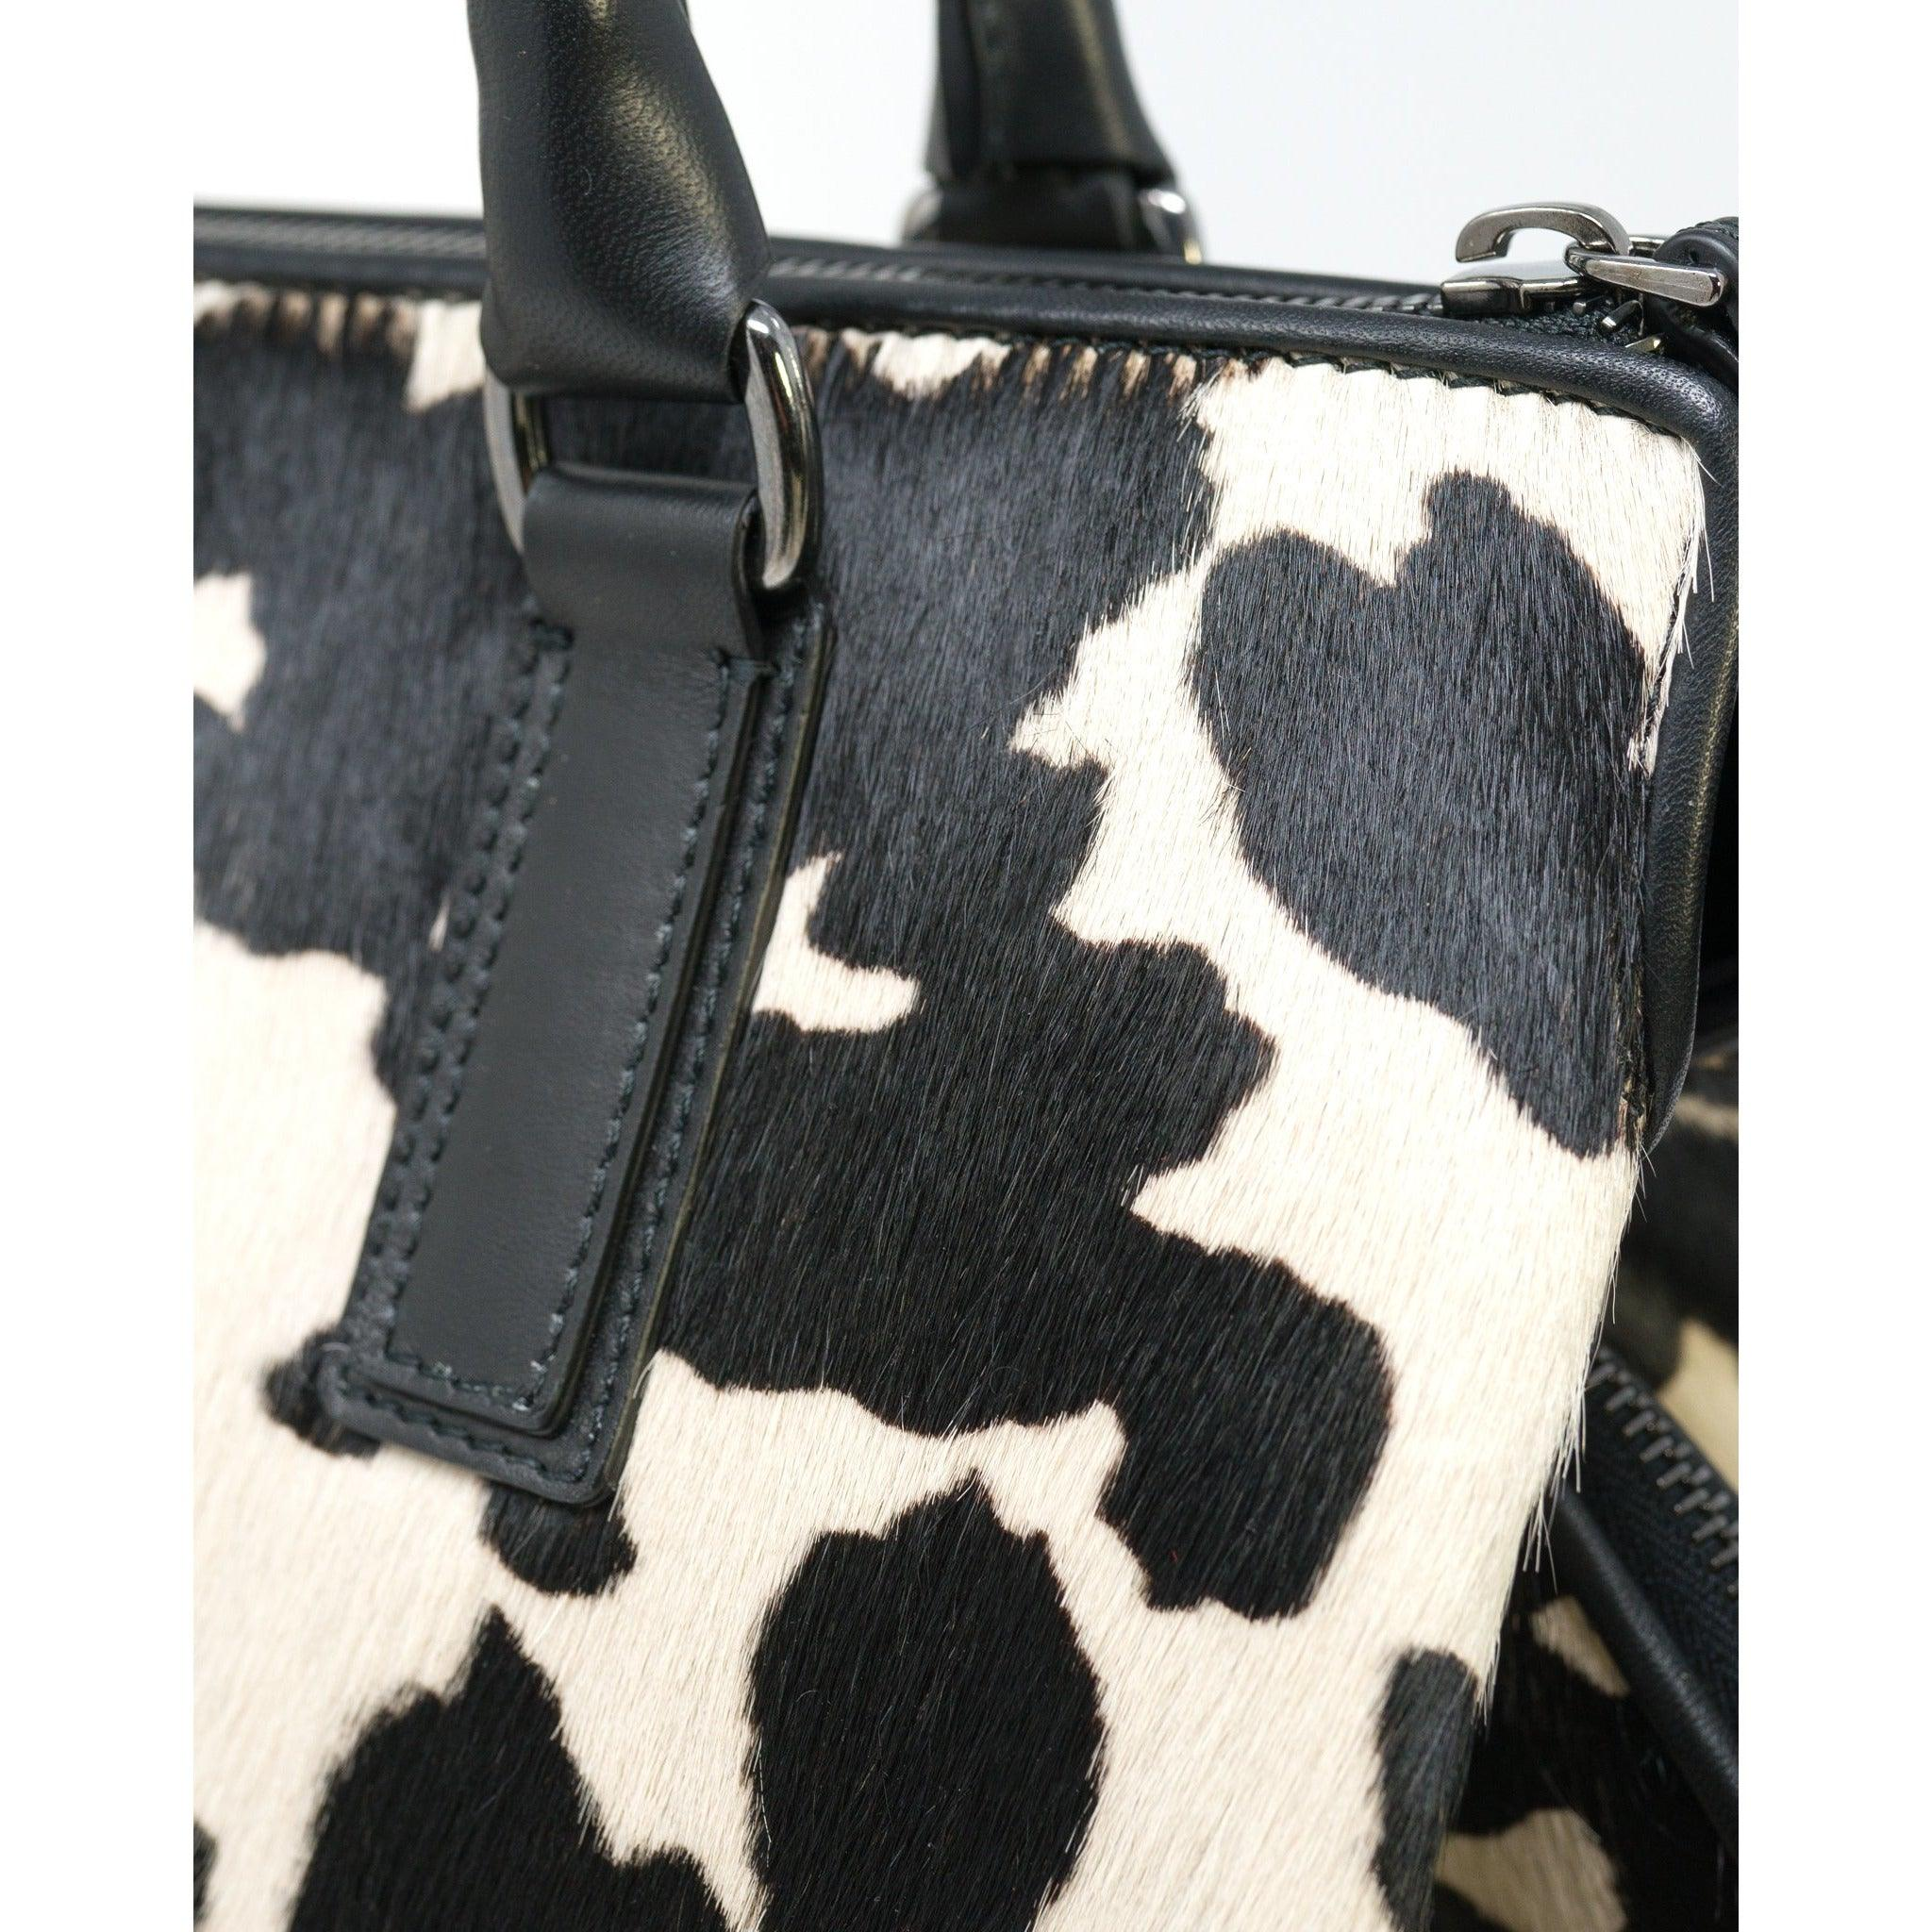 JT332 5559 Top Handle Bag - New Fall Winter 2019-2020 Collection